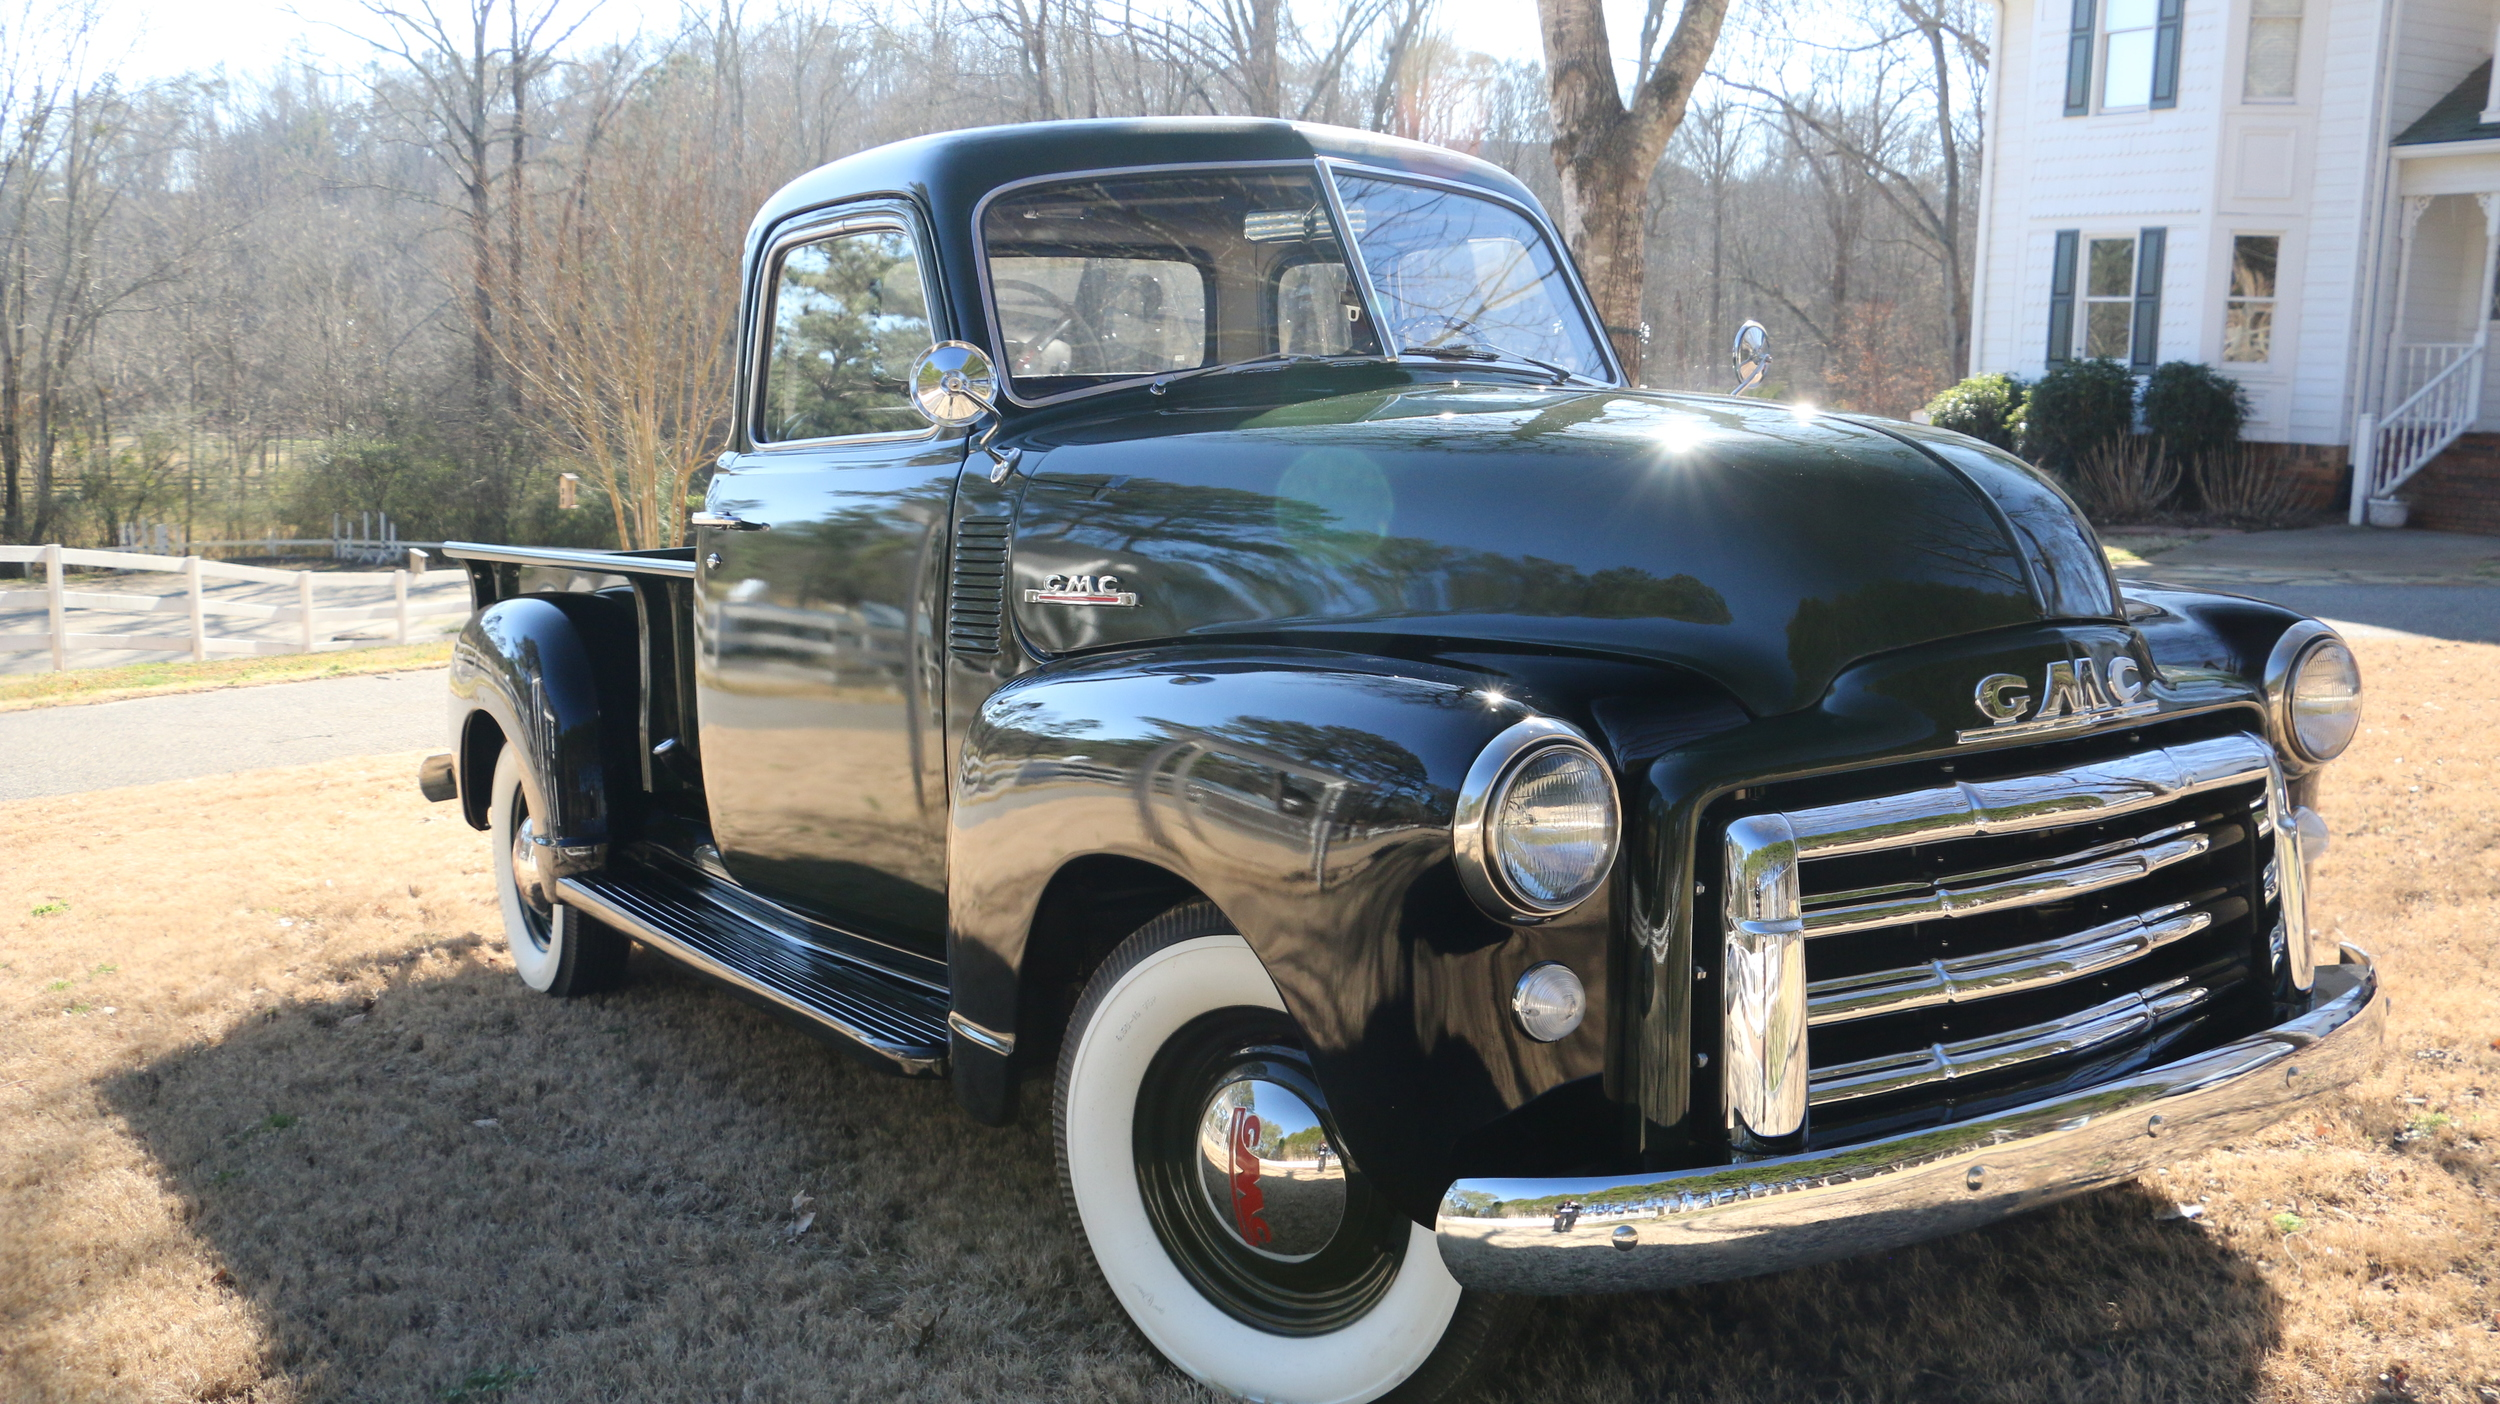 Gallery — Stove Bolt 1947 GMC Longbed Truck